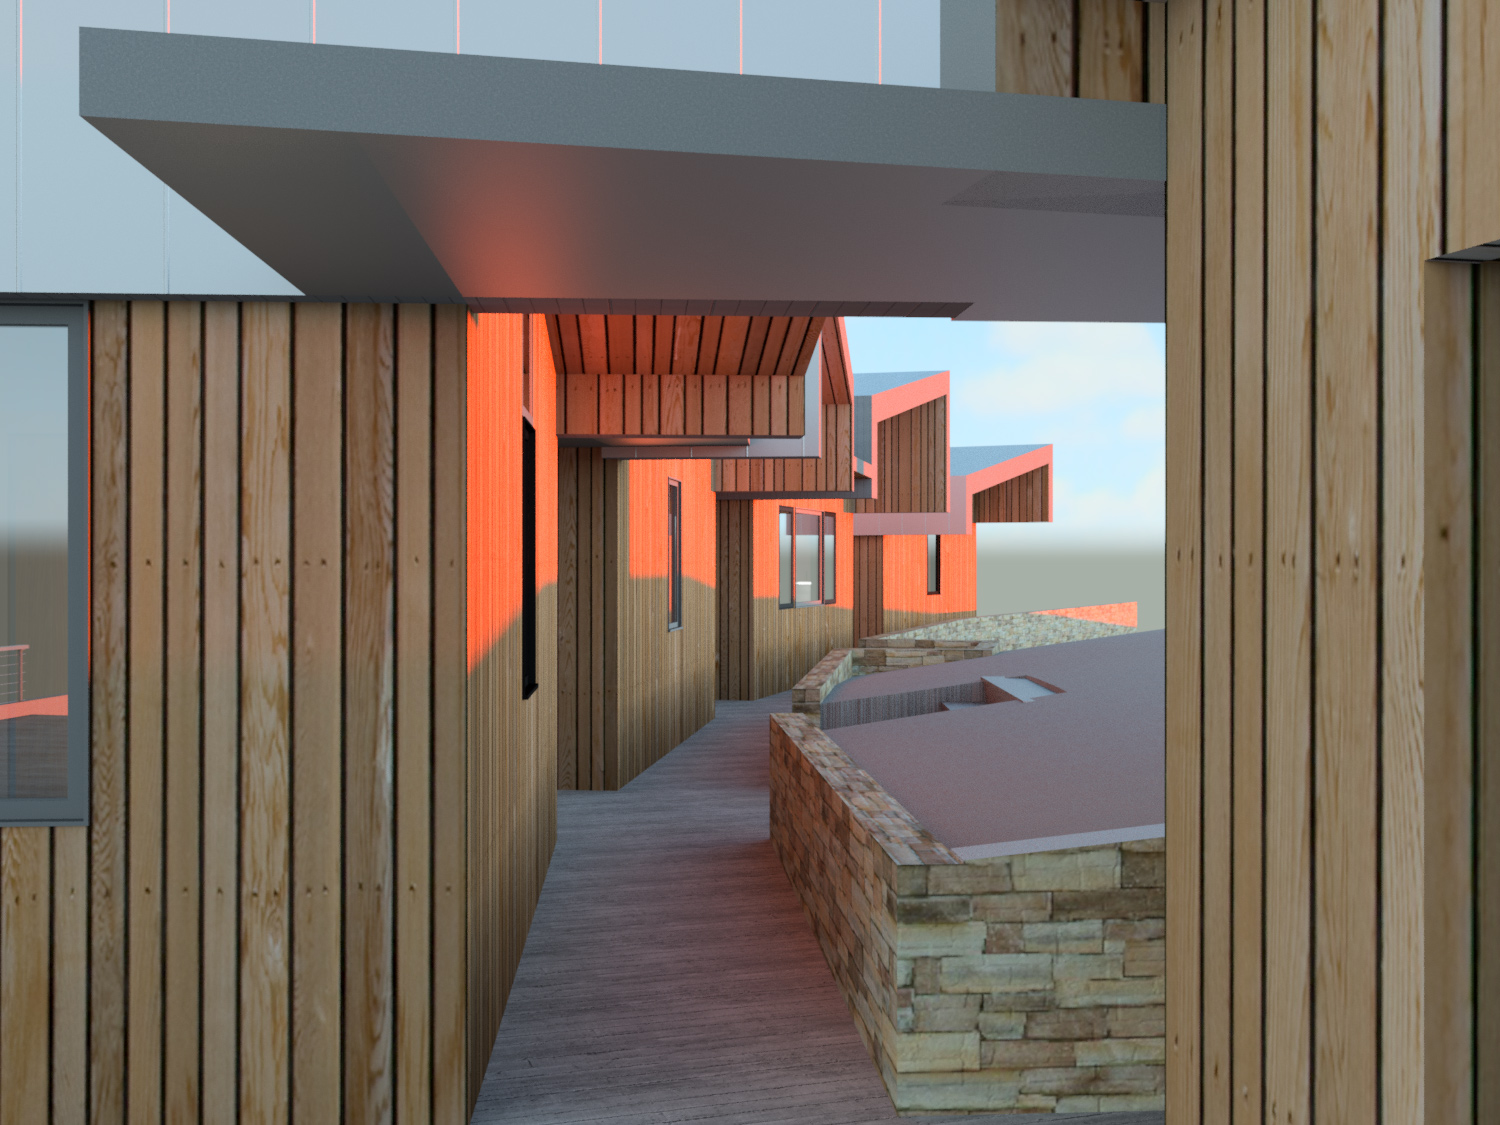 DH--EXTERIOR-WEST-SUNSET-WALKWAY-WEBRES-2018